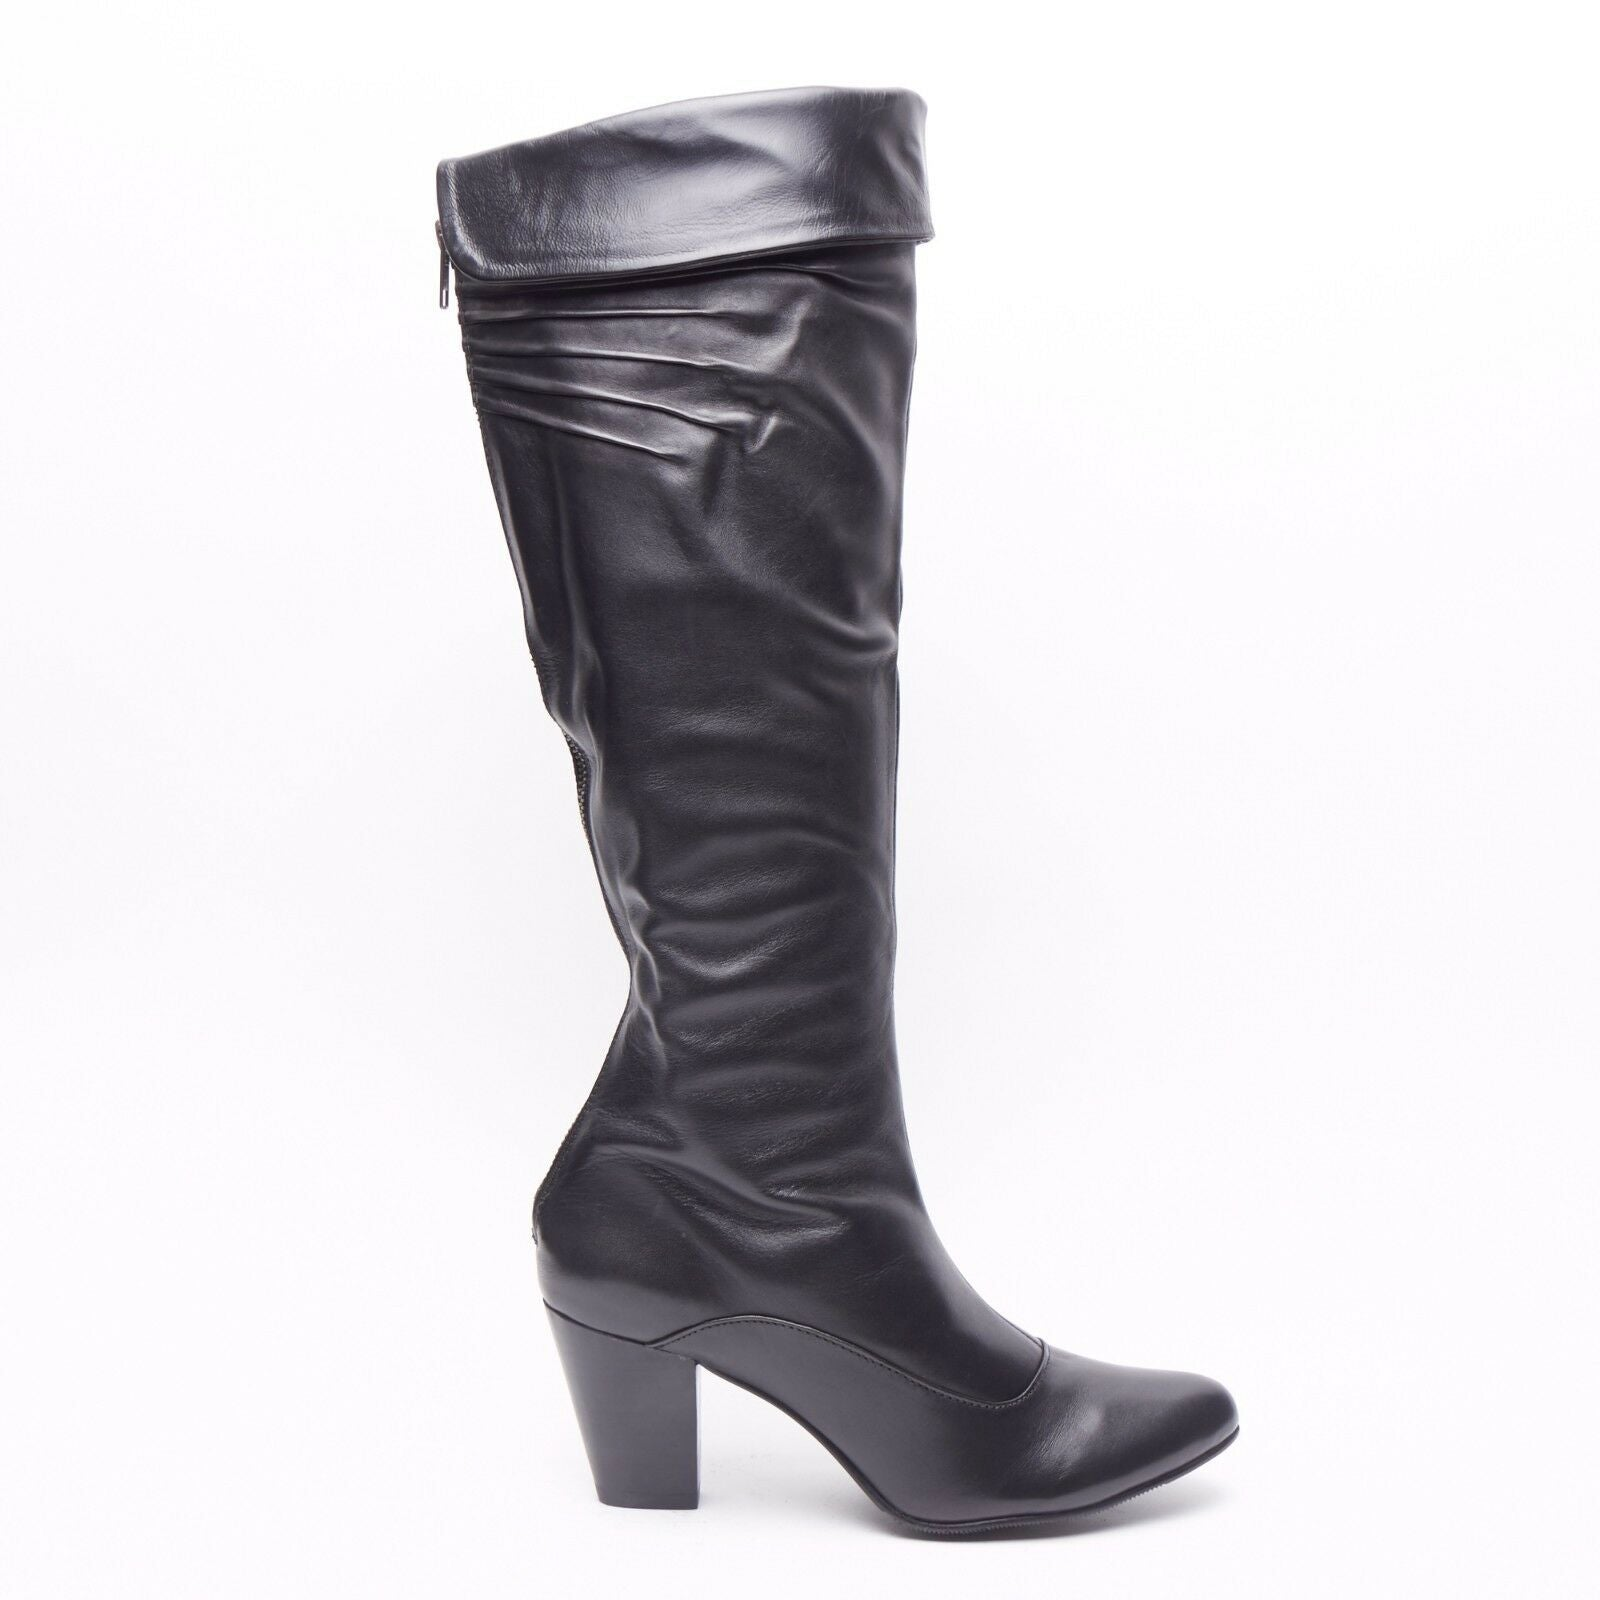 Ladies Long Boots - 39571 Black